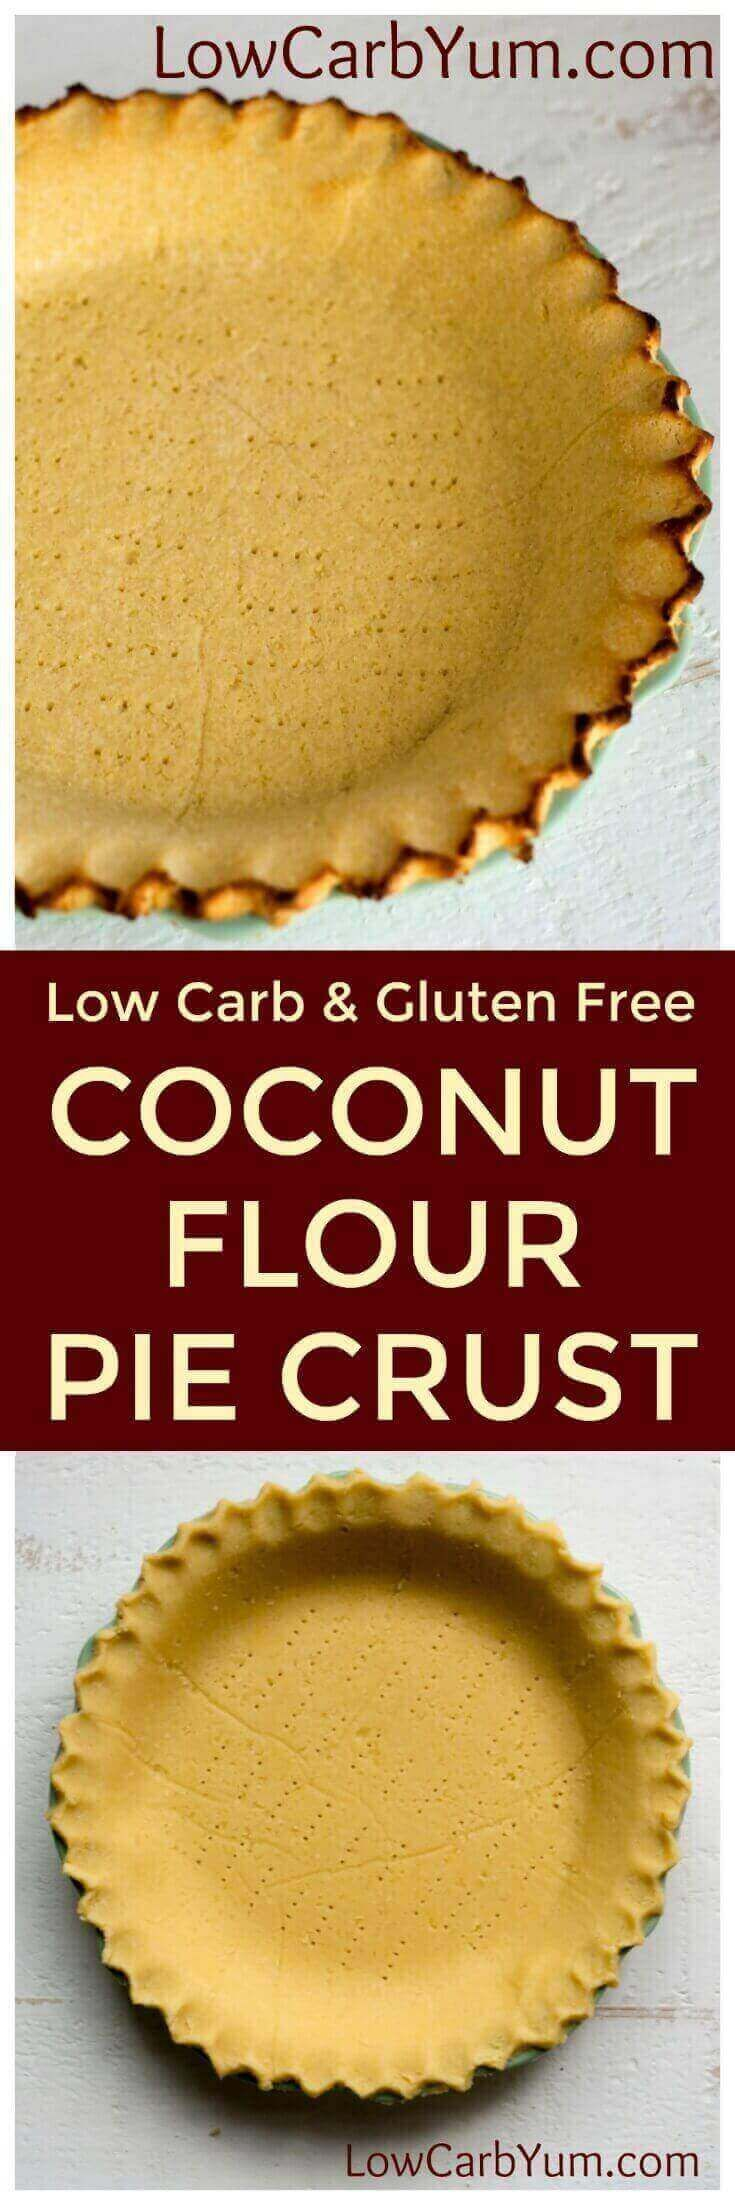 Want the perfect low carb pie crust that isn't made with almond flour? Give this simple coconut flour pie crust a try for both sweet and savory pies. | http://LowCarbYum.com